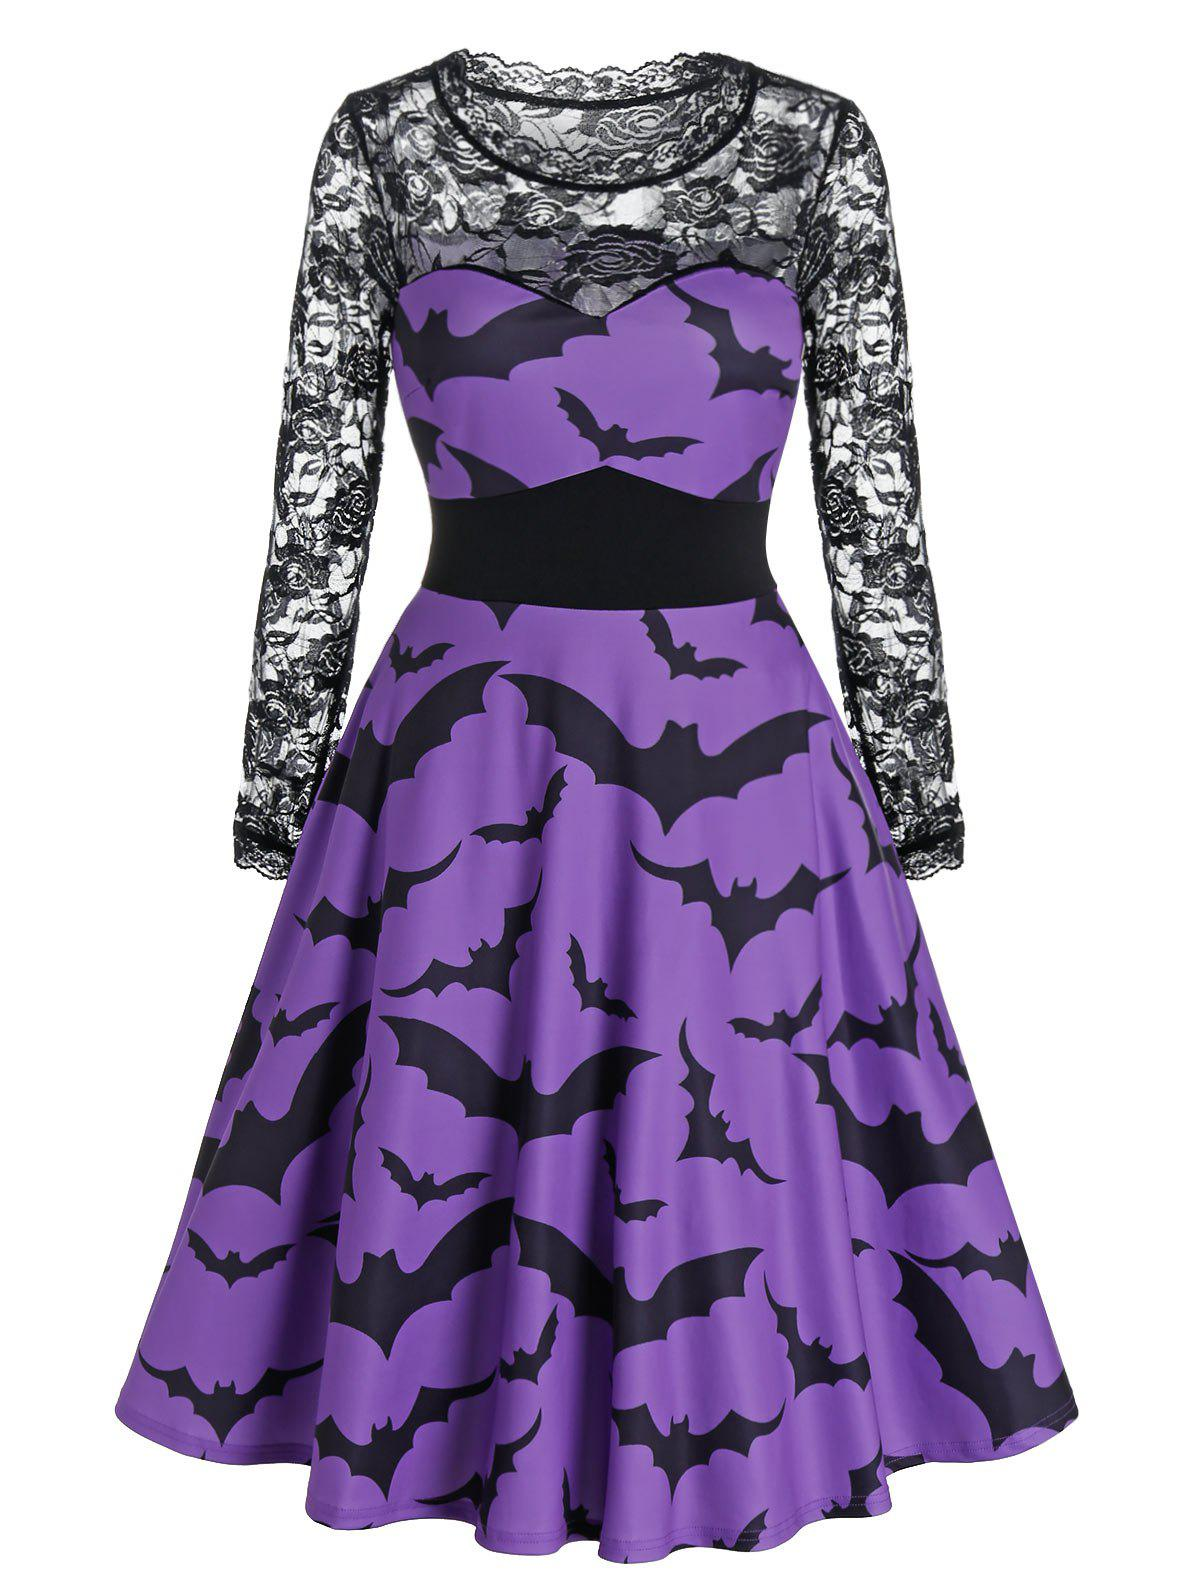 New Halloween Bat Print Sheer Lace Sleeve A Line Dress